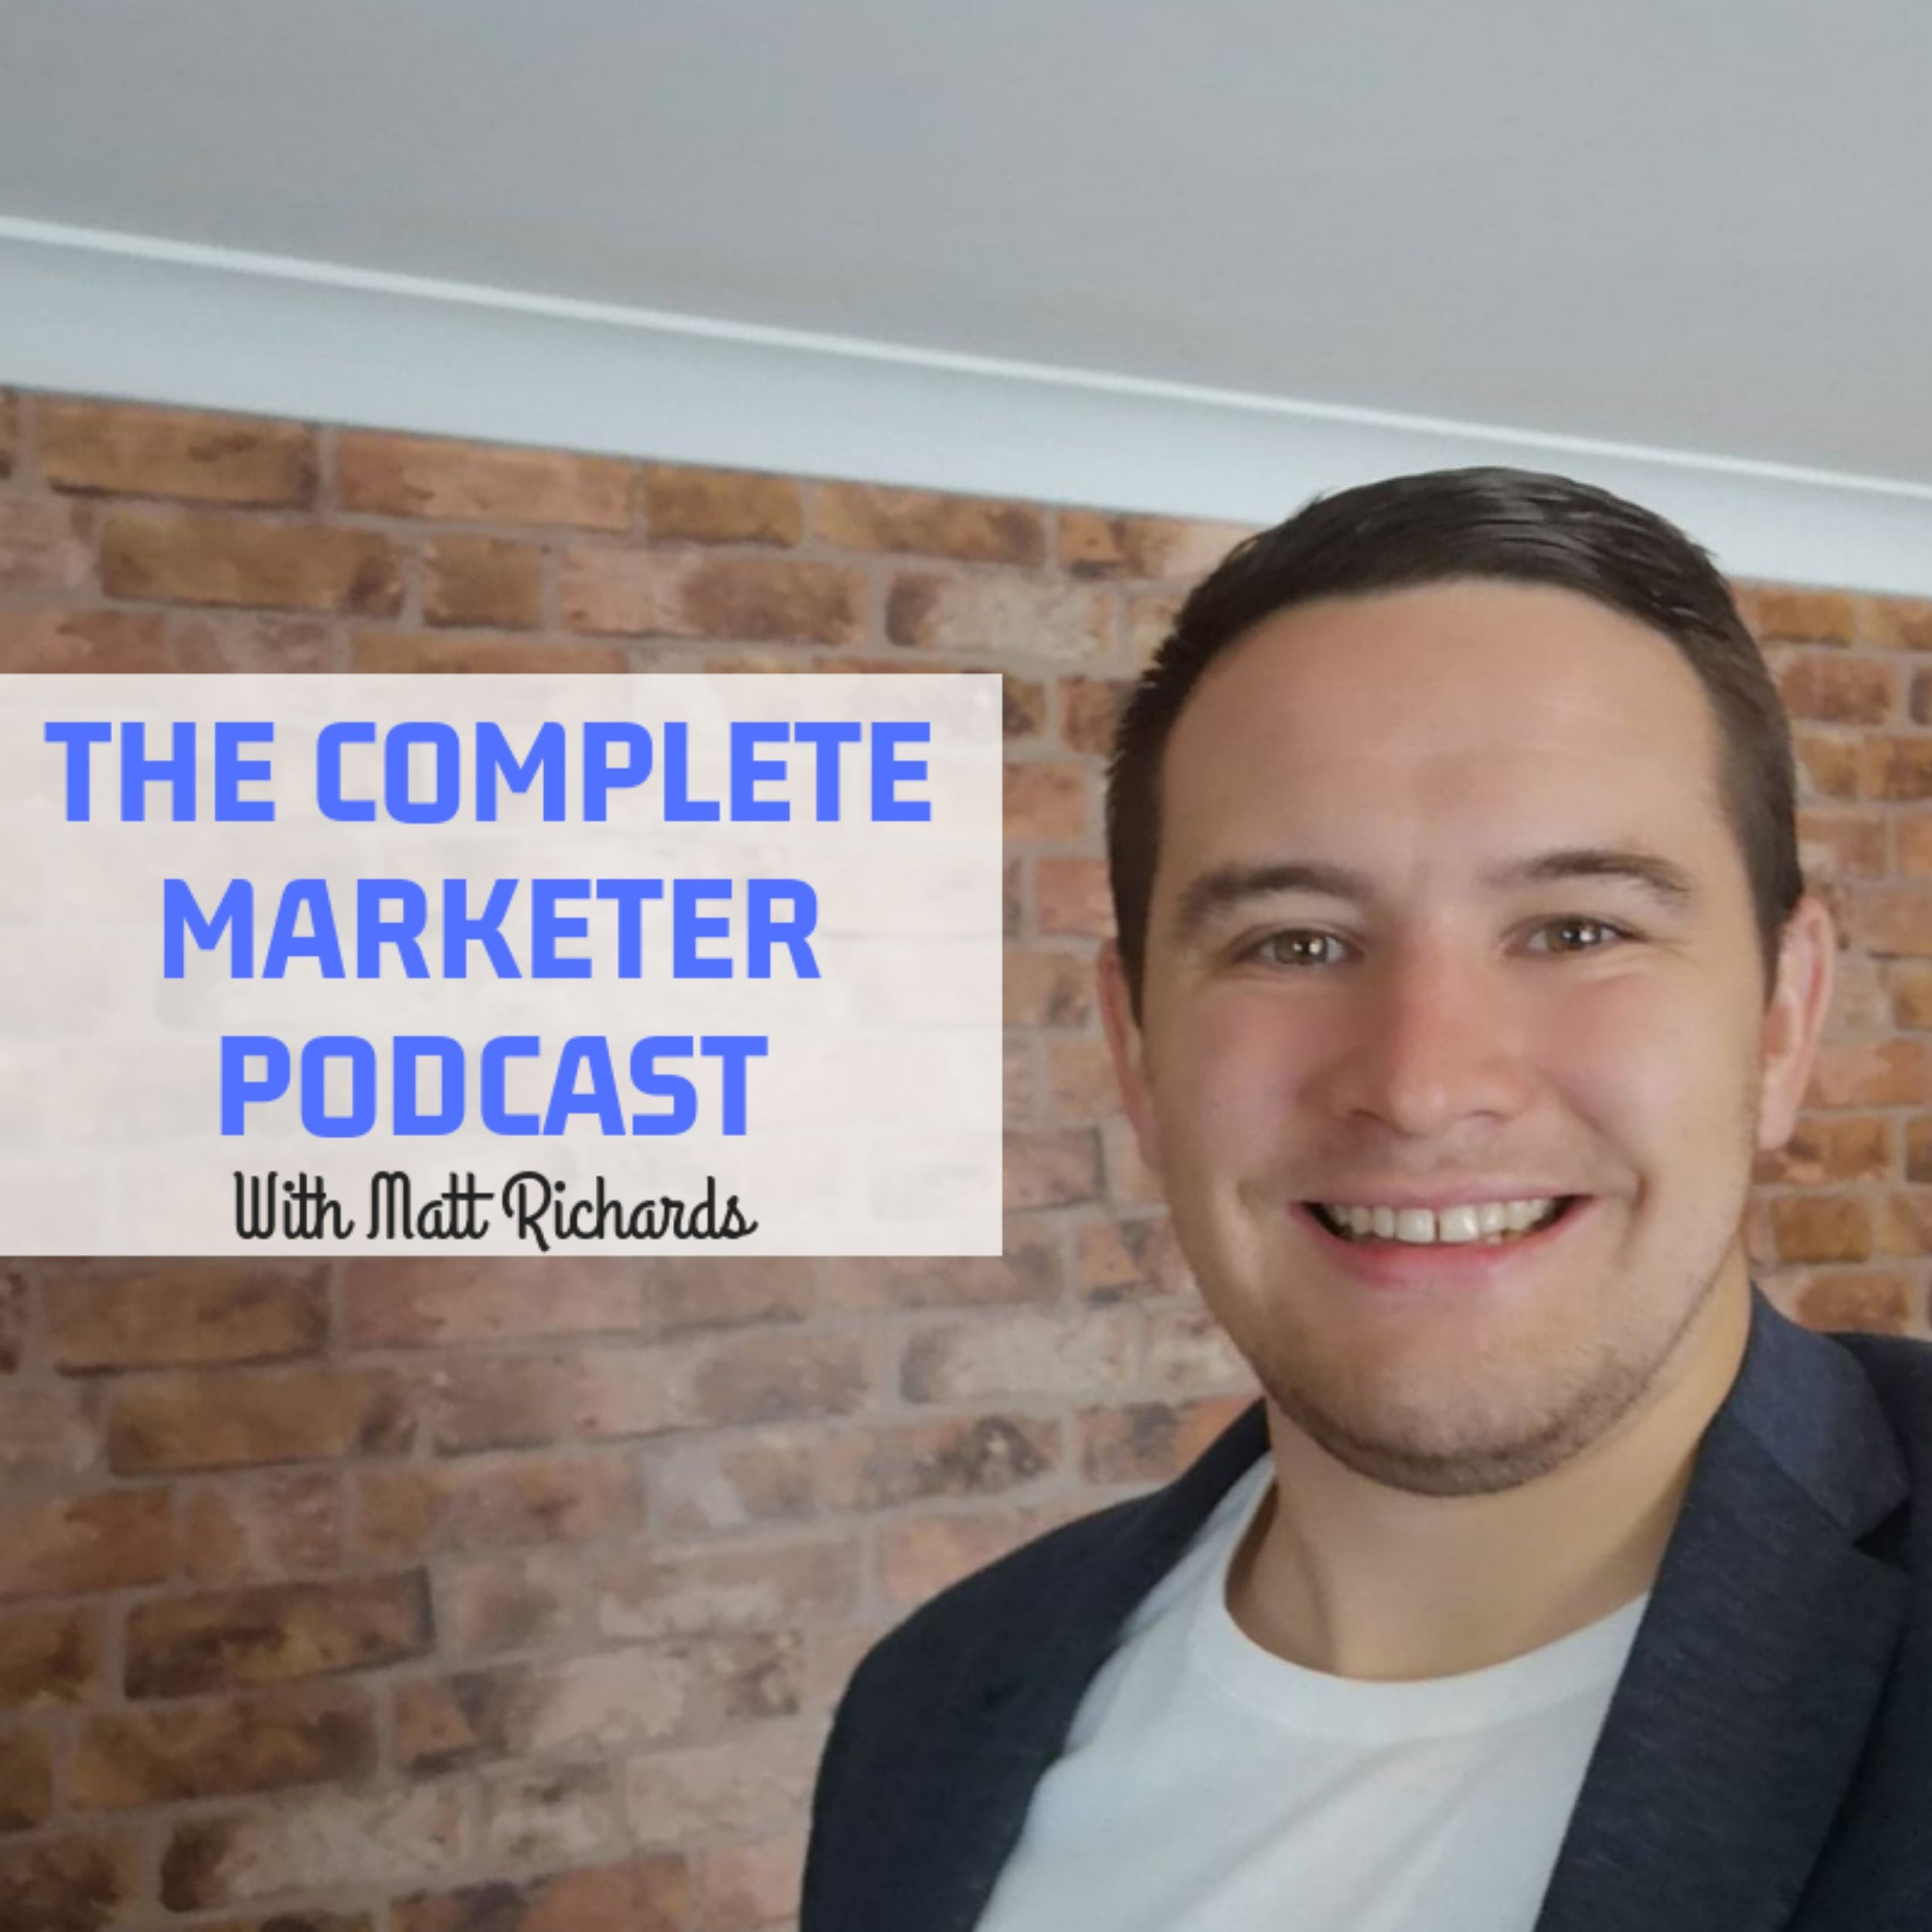 The Complete Marketer Podcast